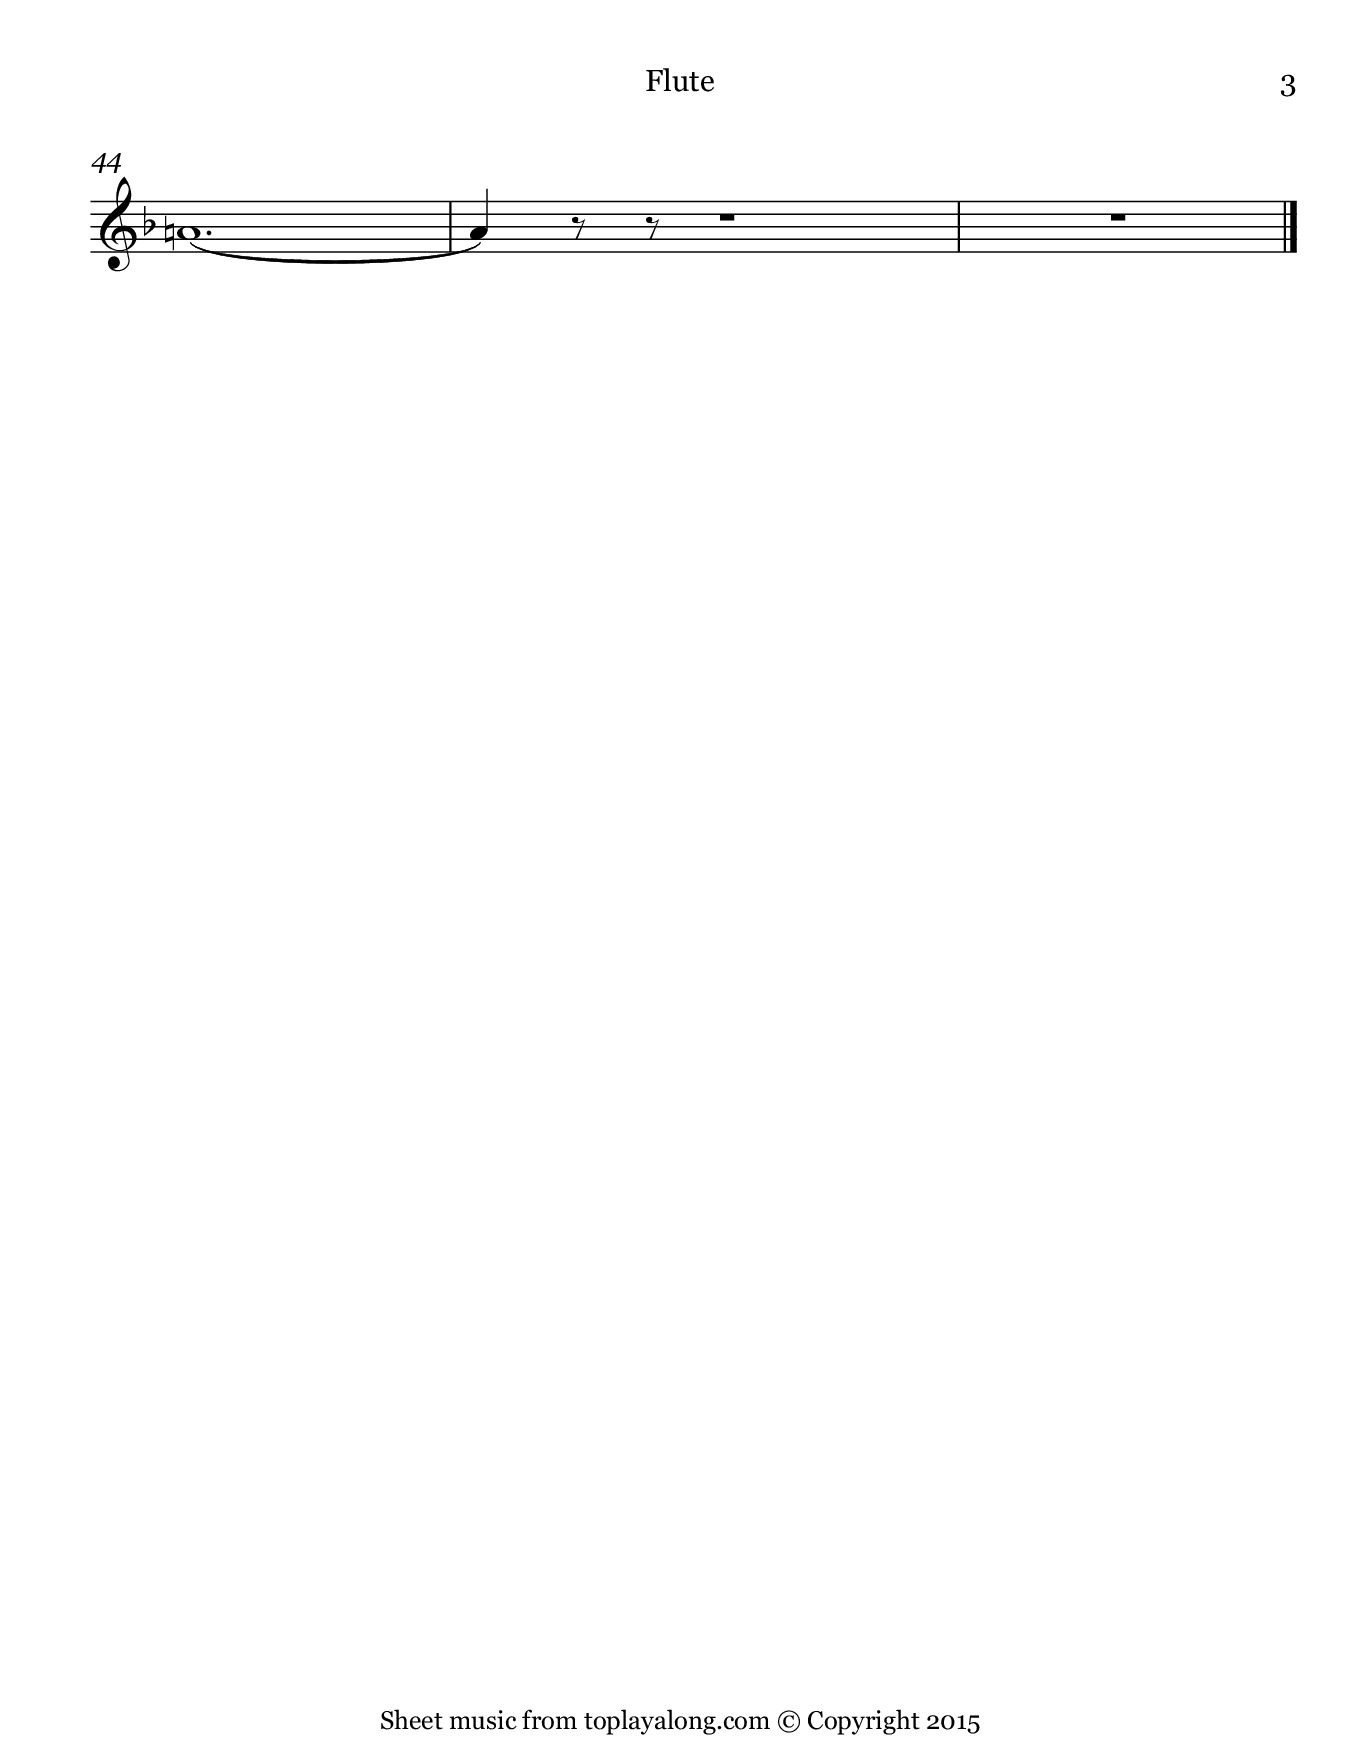 Casta Diva from Norma by Bellini. Sheet music for Flute, page 3.